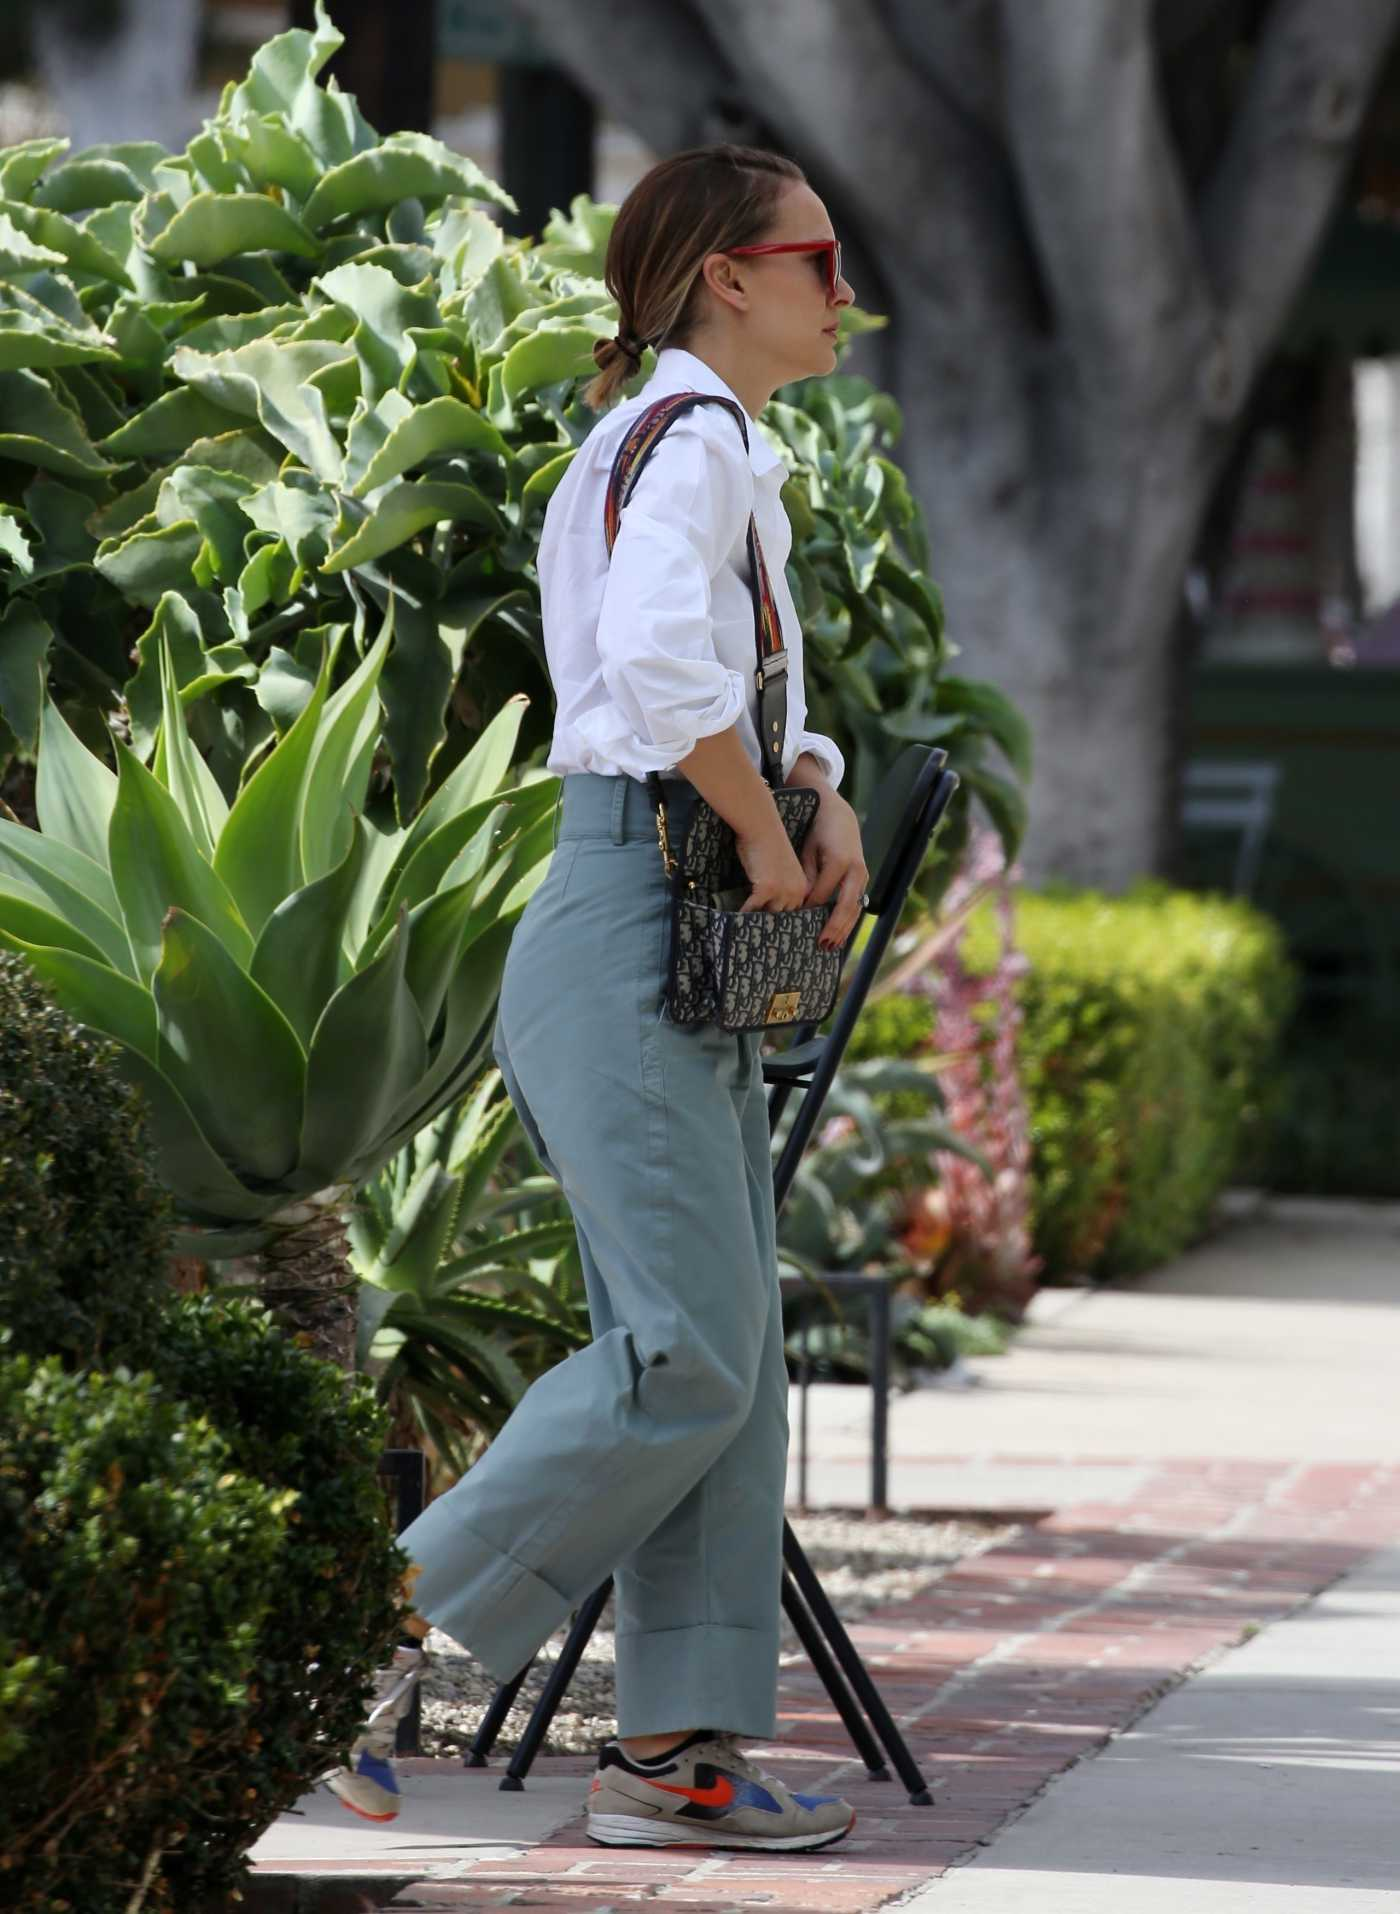 Natalie Portman in a White Shirt Was Seen Out in Los Angeles 10/16/2019